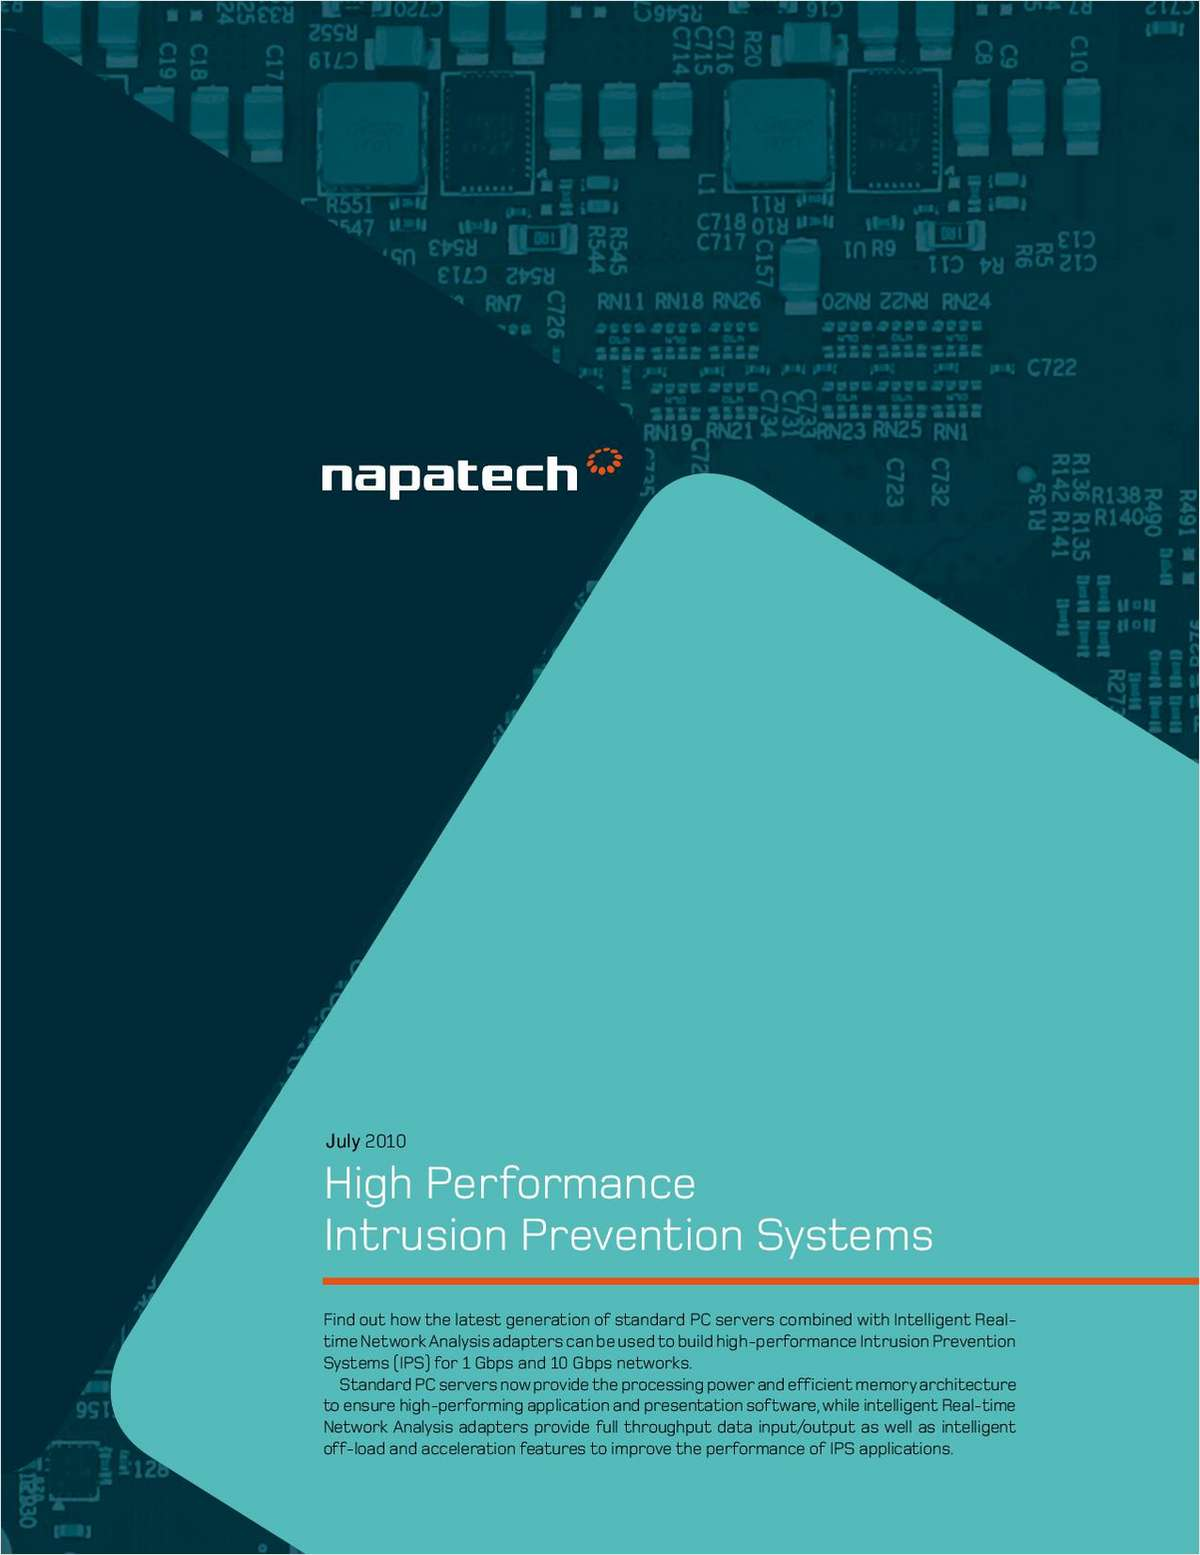 High Performance Intrusion Prevention Systems for Network Security Vendors